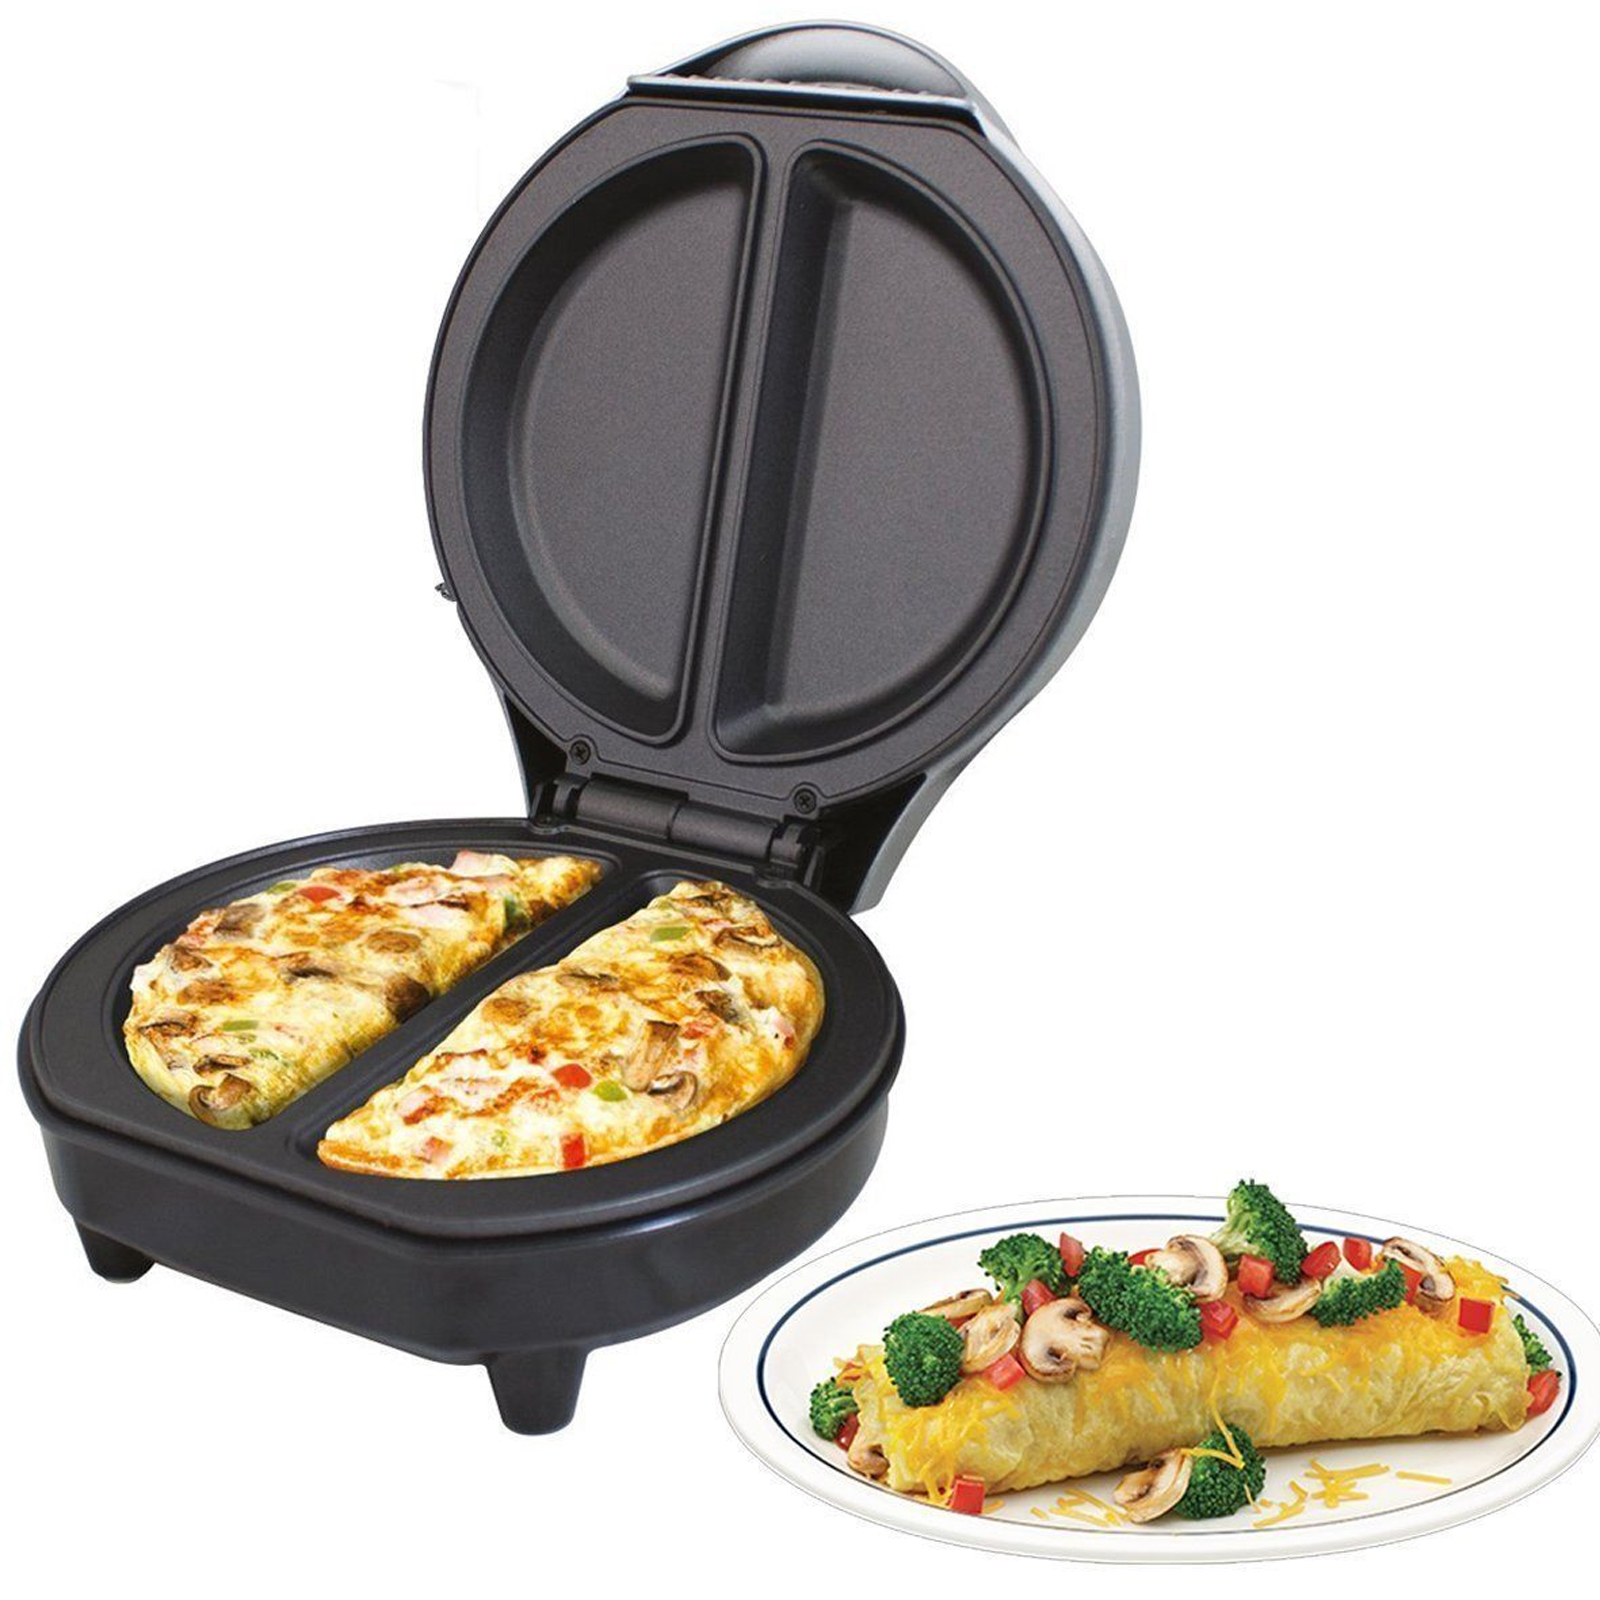 Space Saving Kitchen Gadgets New Electric Omelette Maker Waffle Maker Pancake Crepe